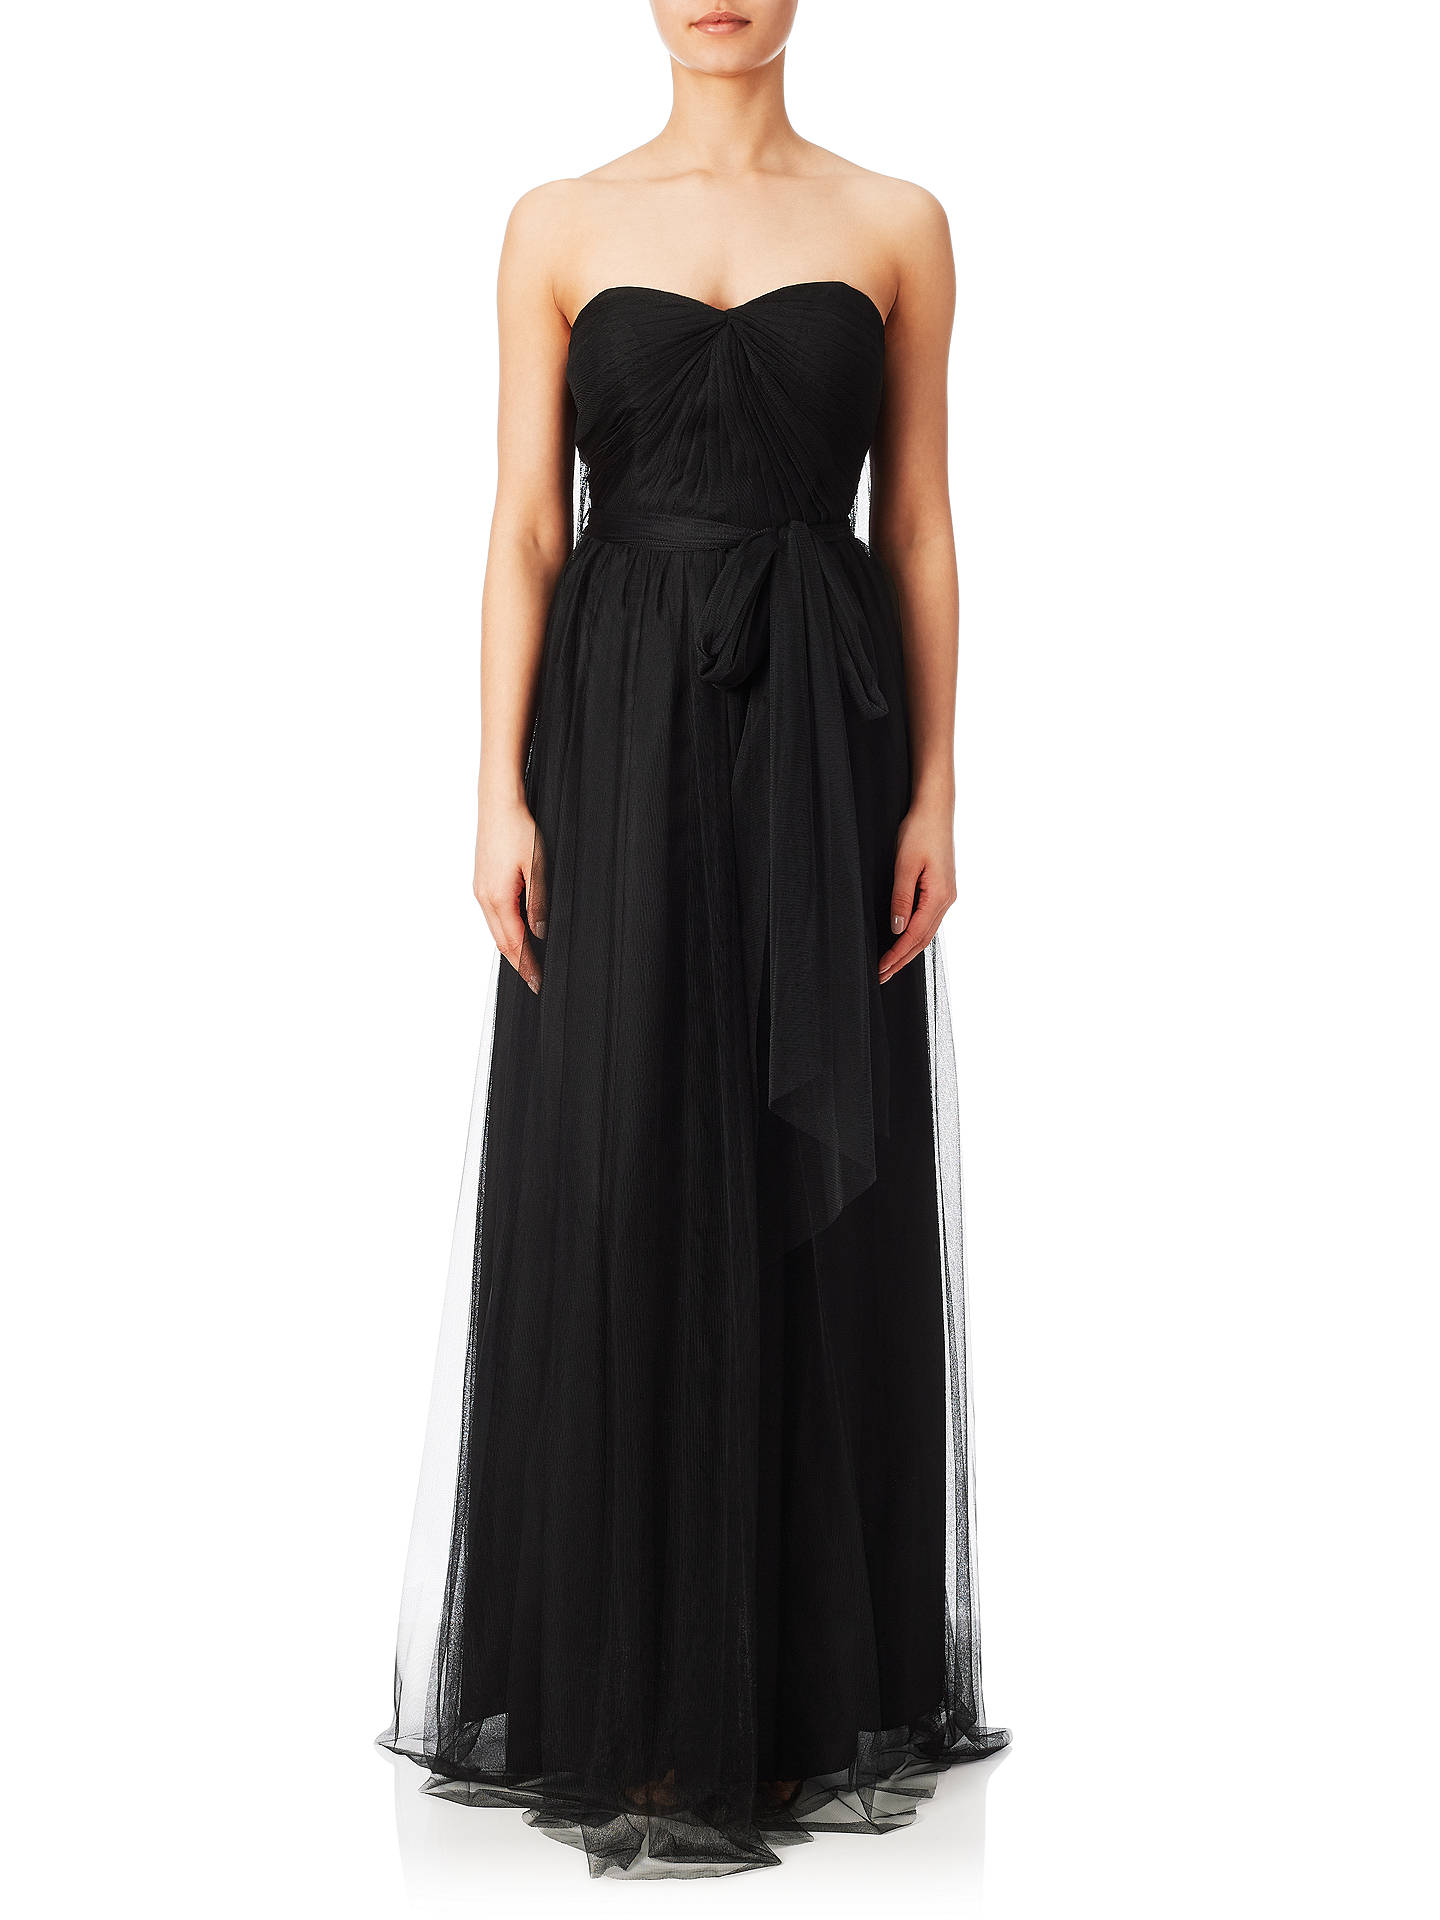 Adrianna Papell Womens Tulle Strapless Gown Dress